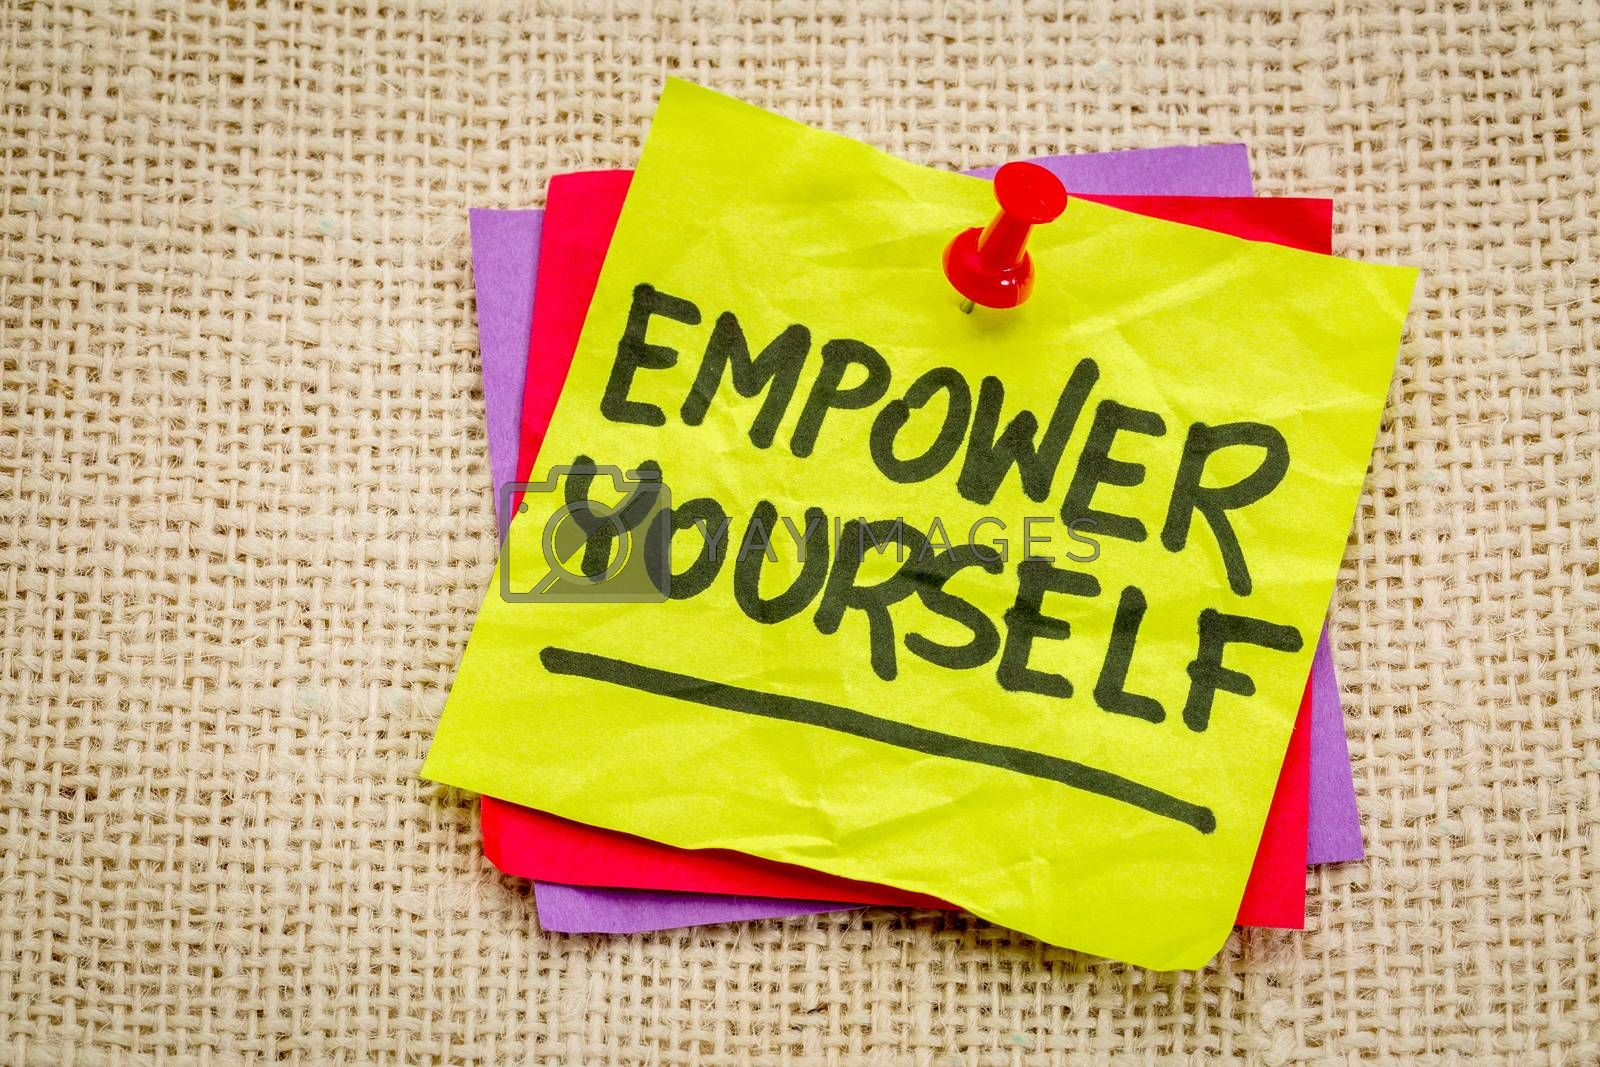 empower yourself reminder - motivational text on a sticky note